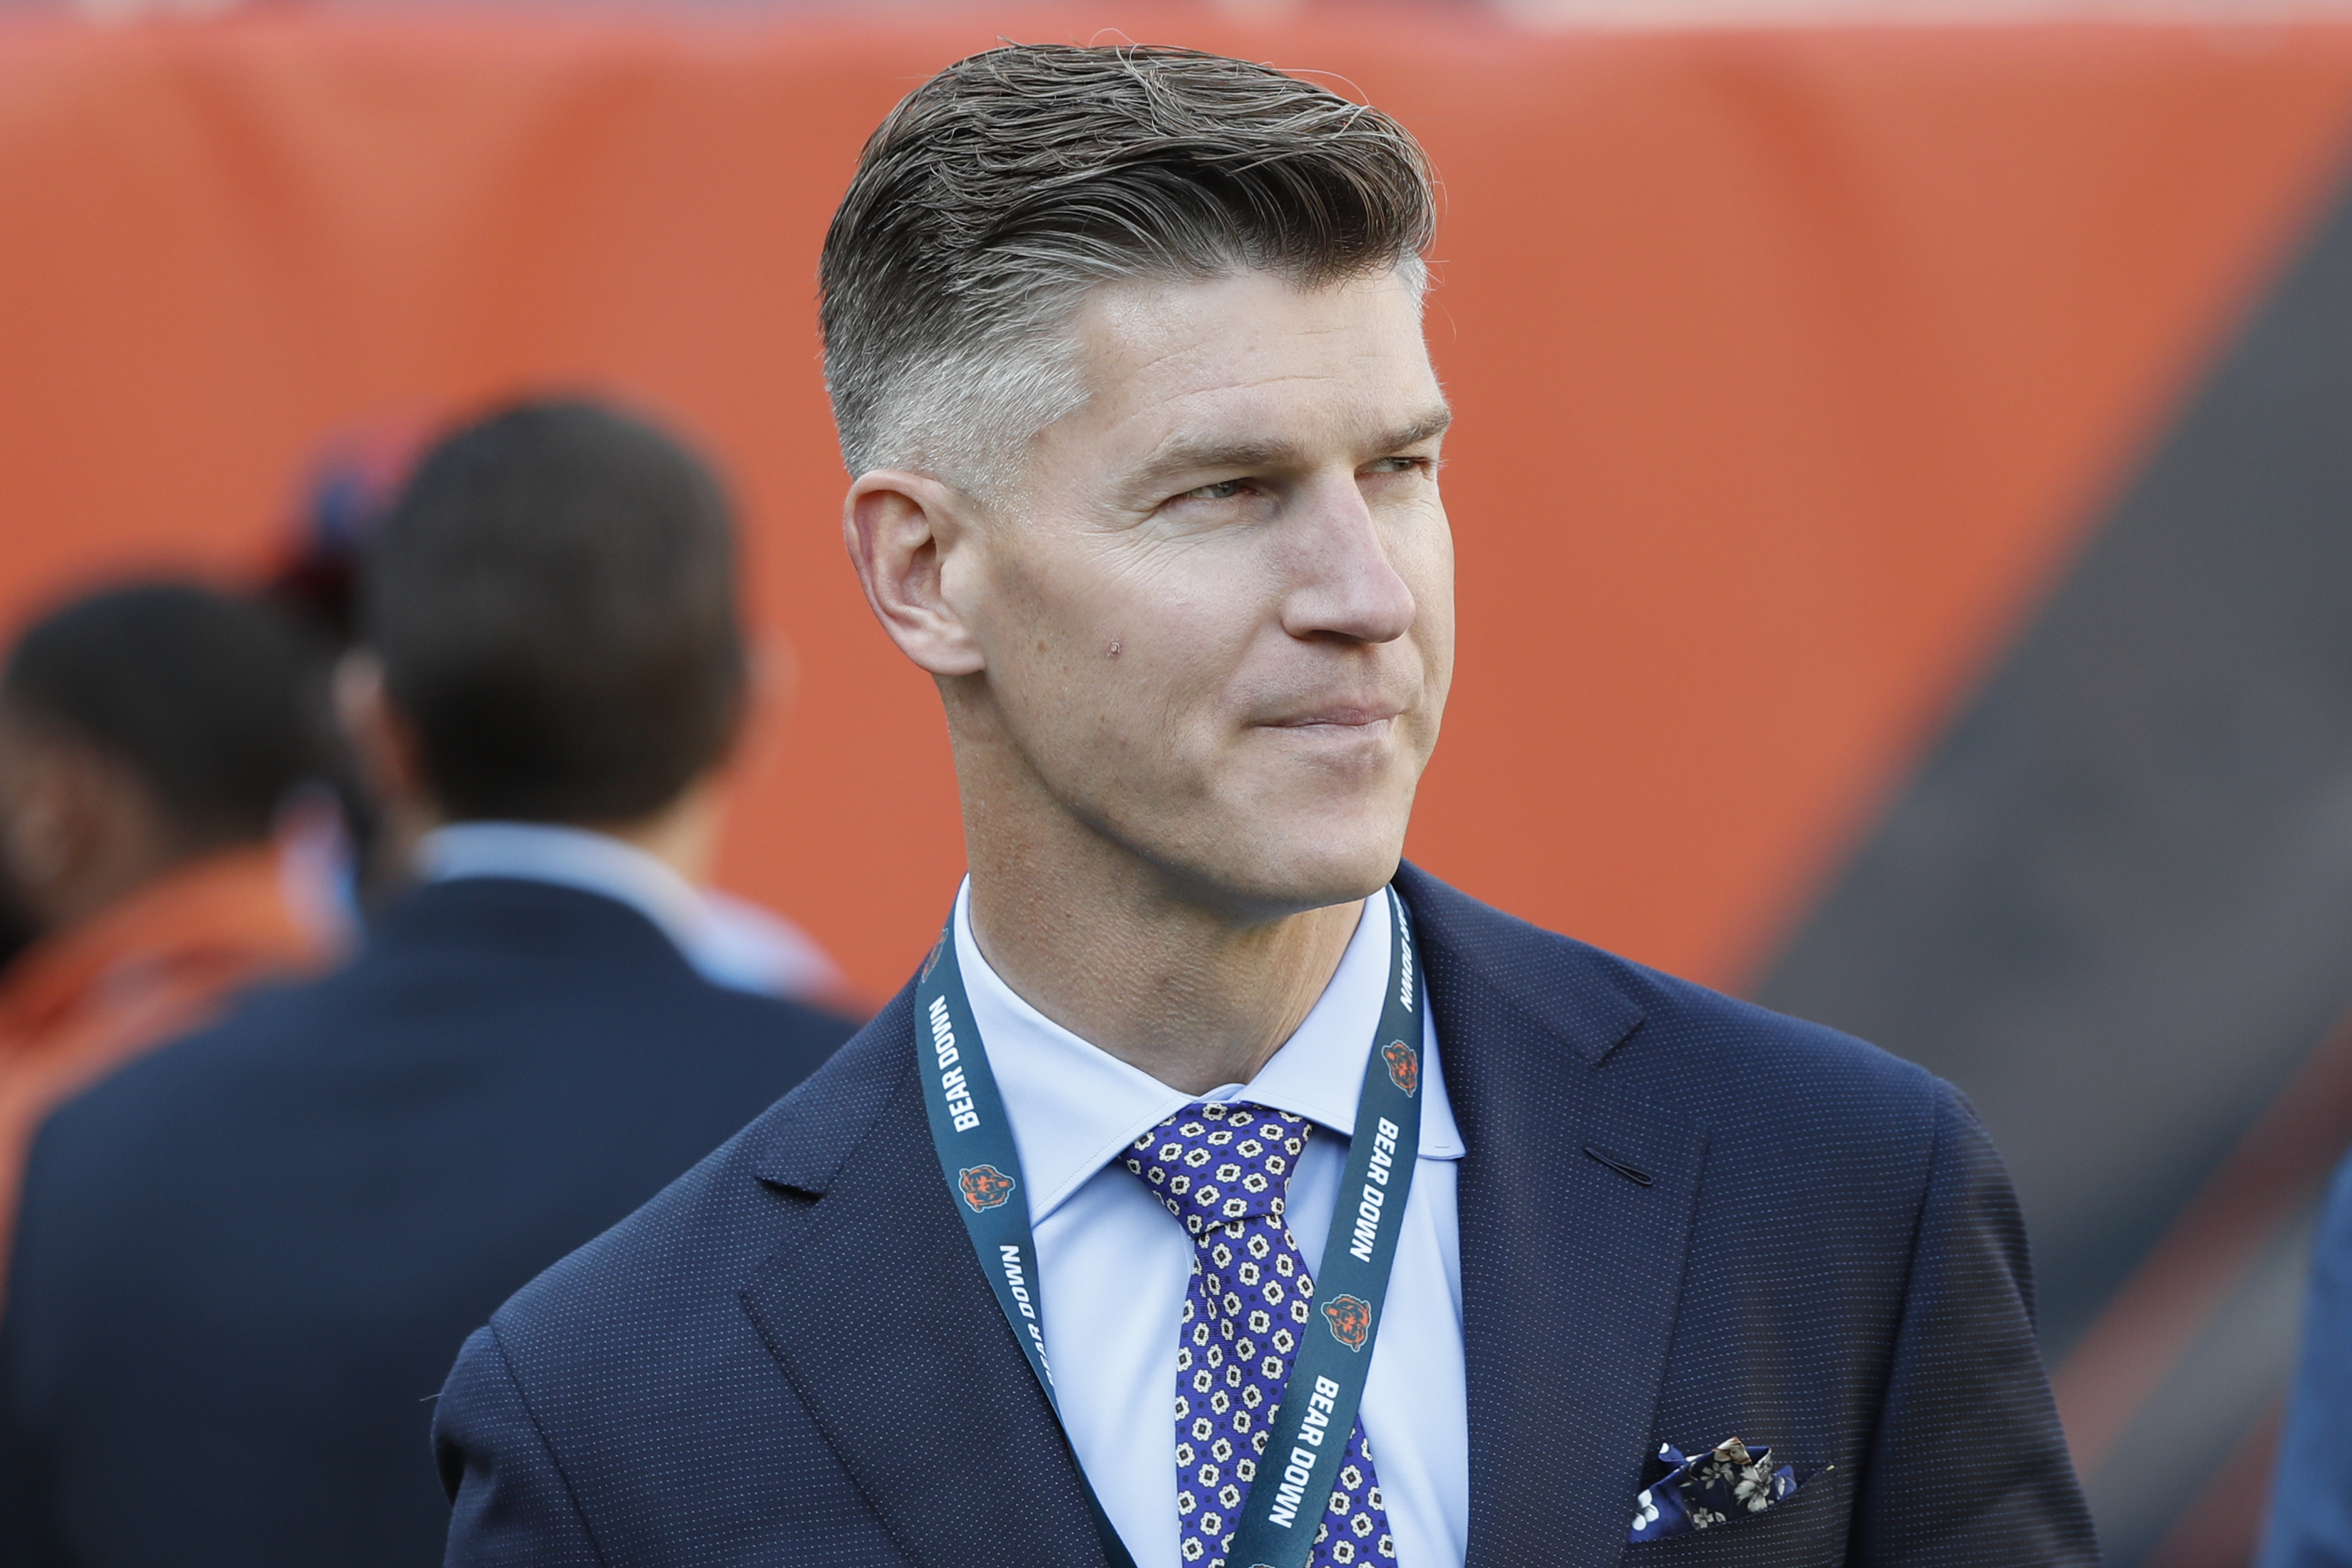 If the Bears decide to make a change at quarterback, should GM Ryan Pace be the one to make the decision?